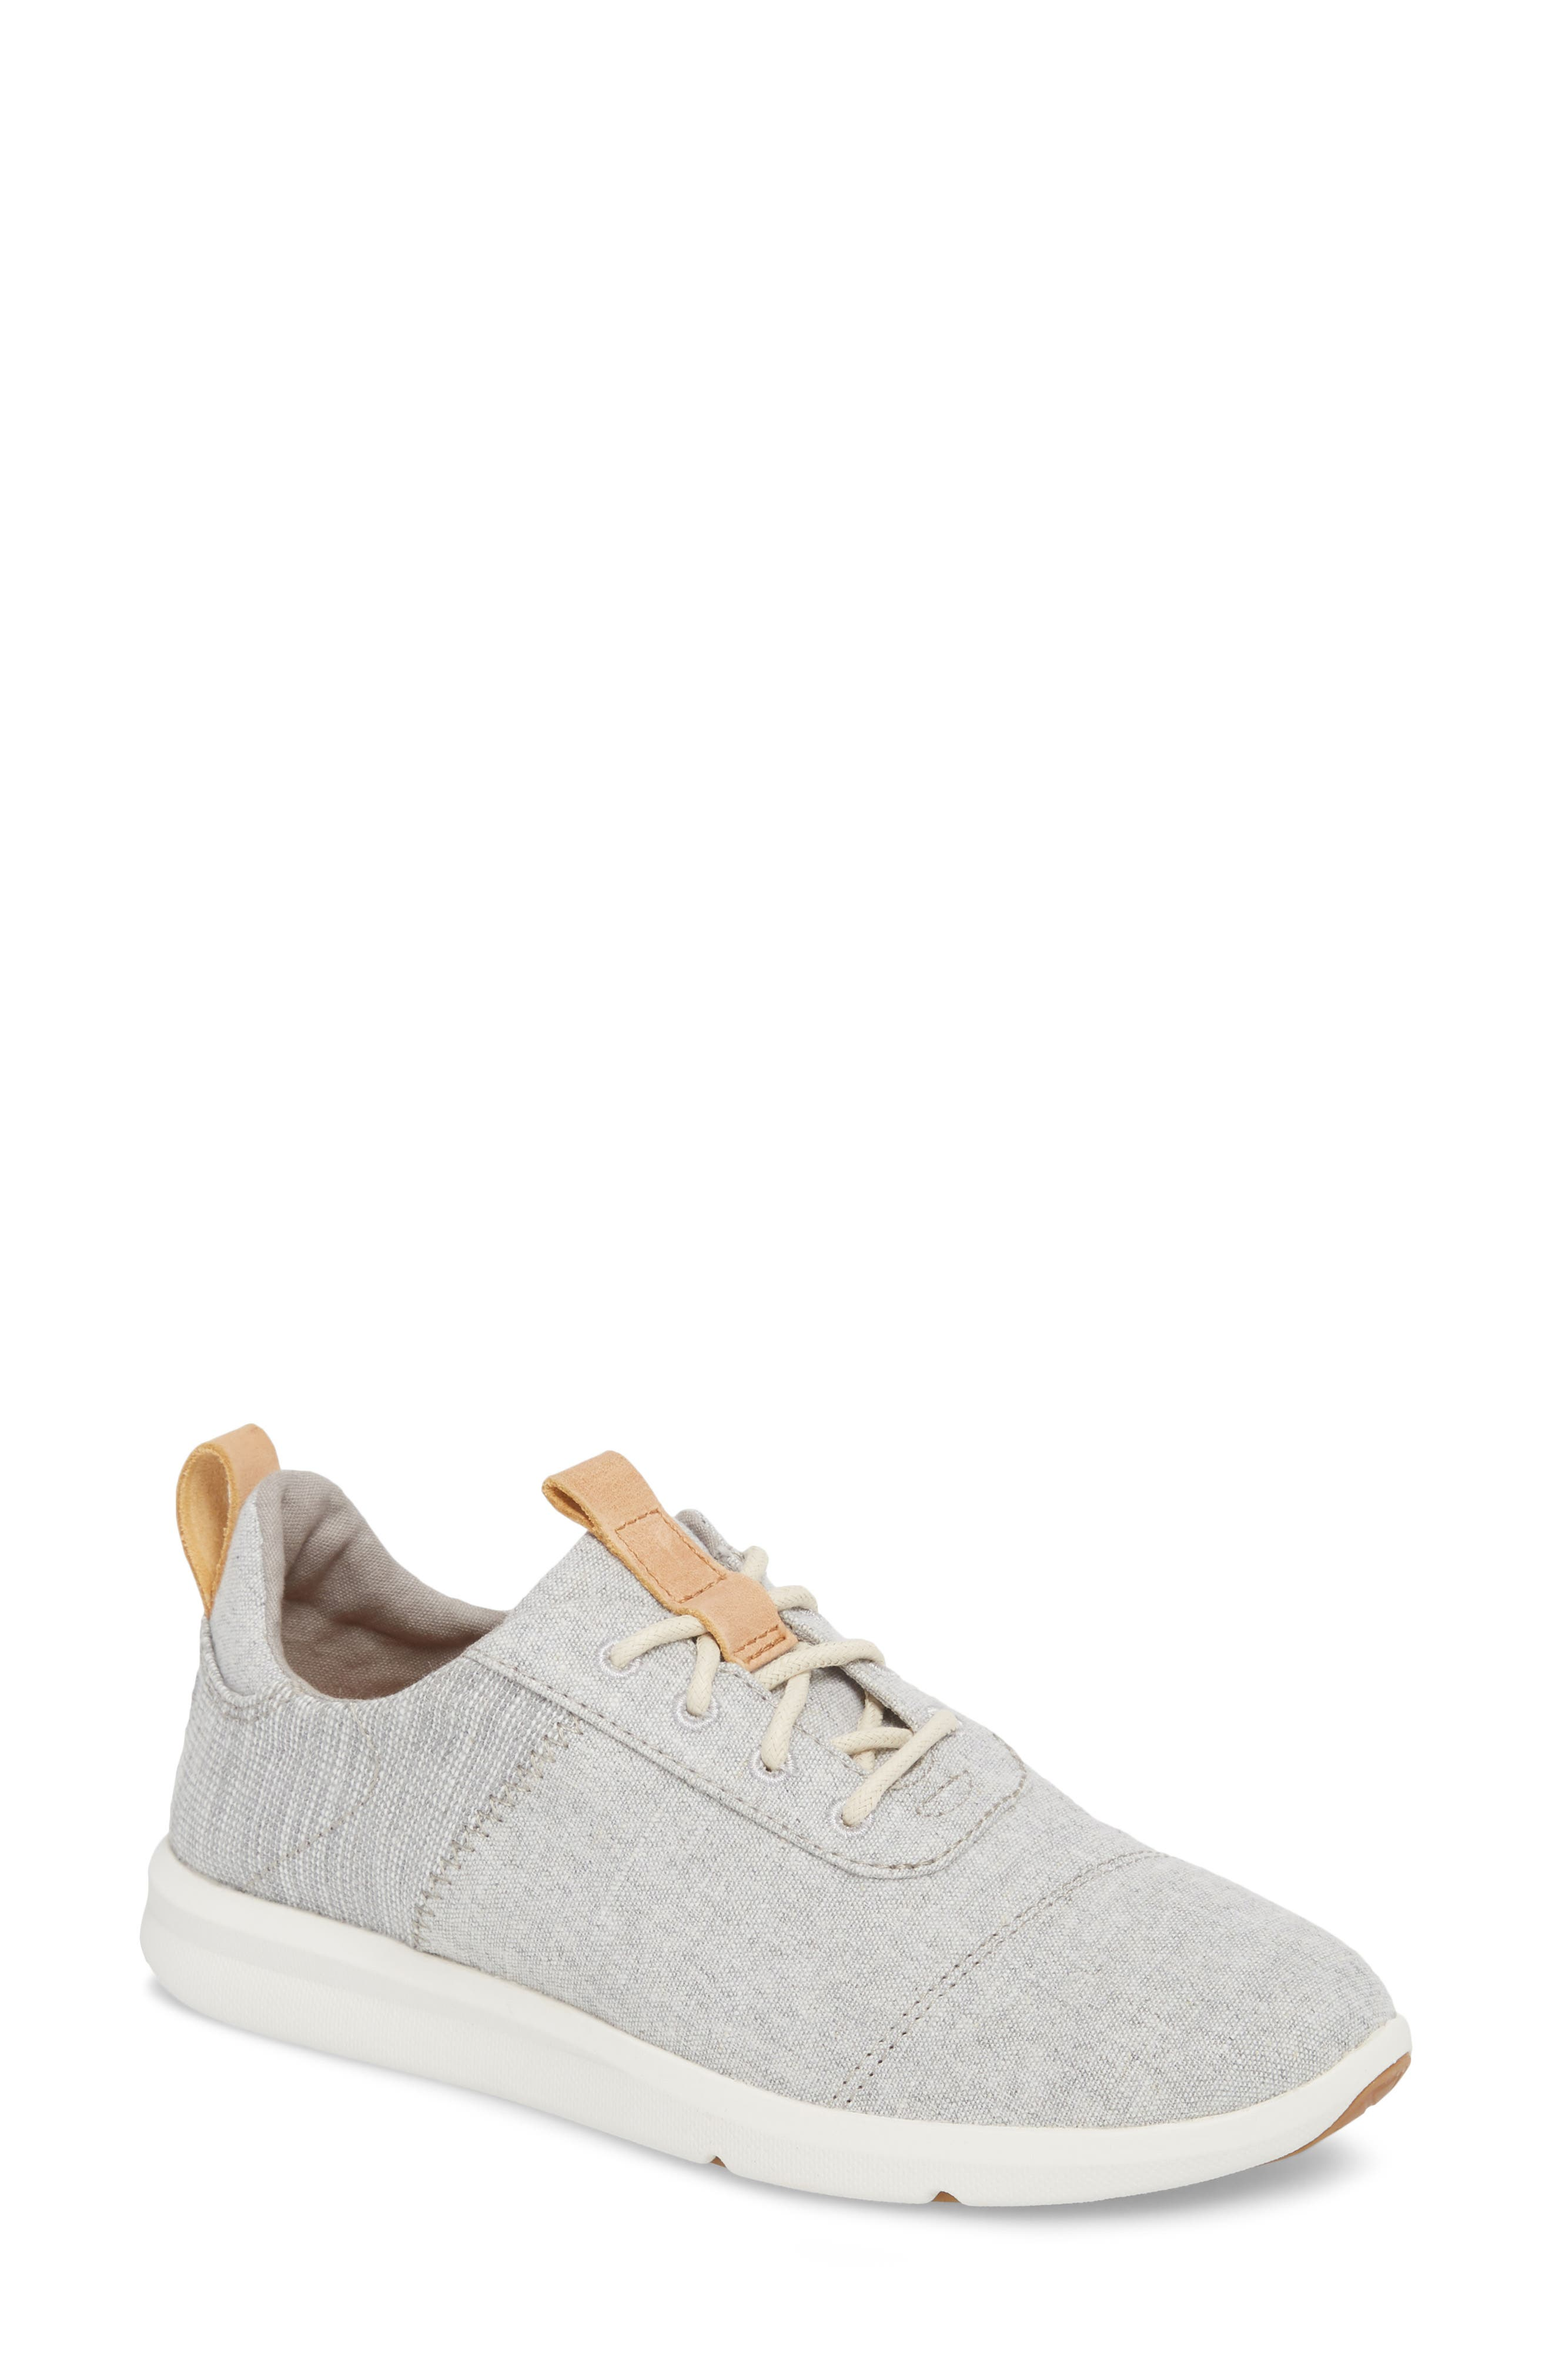 Cabrillo Sneaker,                             Main thumbnail 1, color,                             Drizzle Grey Chambray Mix